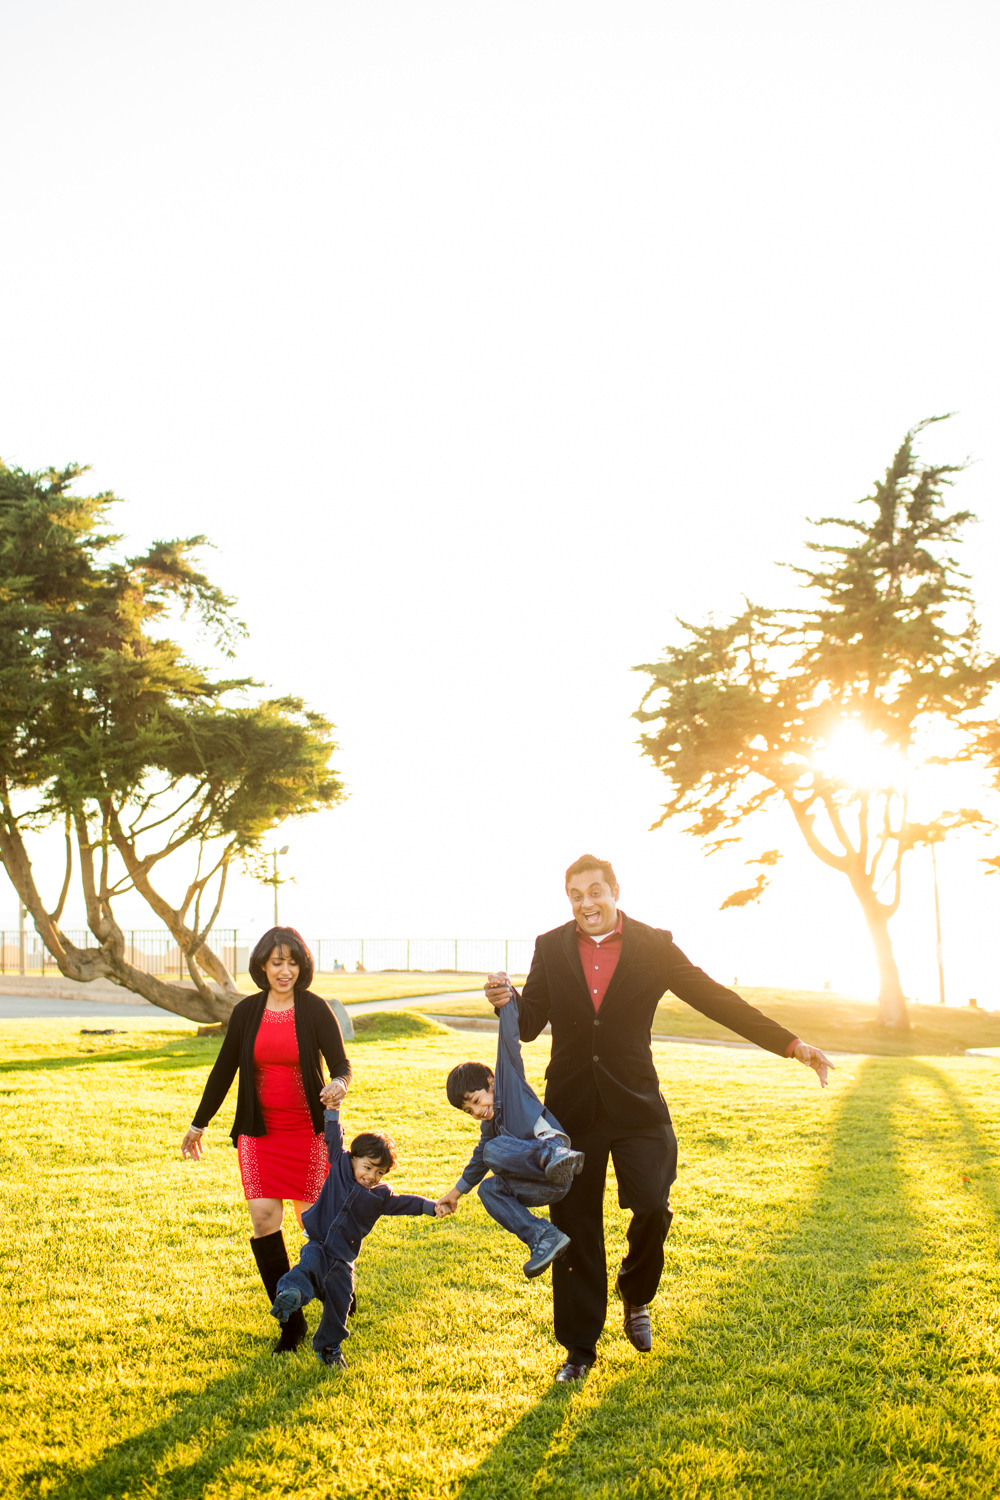 redondobeach-photographer-portraits-family-park-outdoor-sunset-_0009